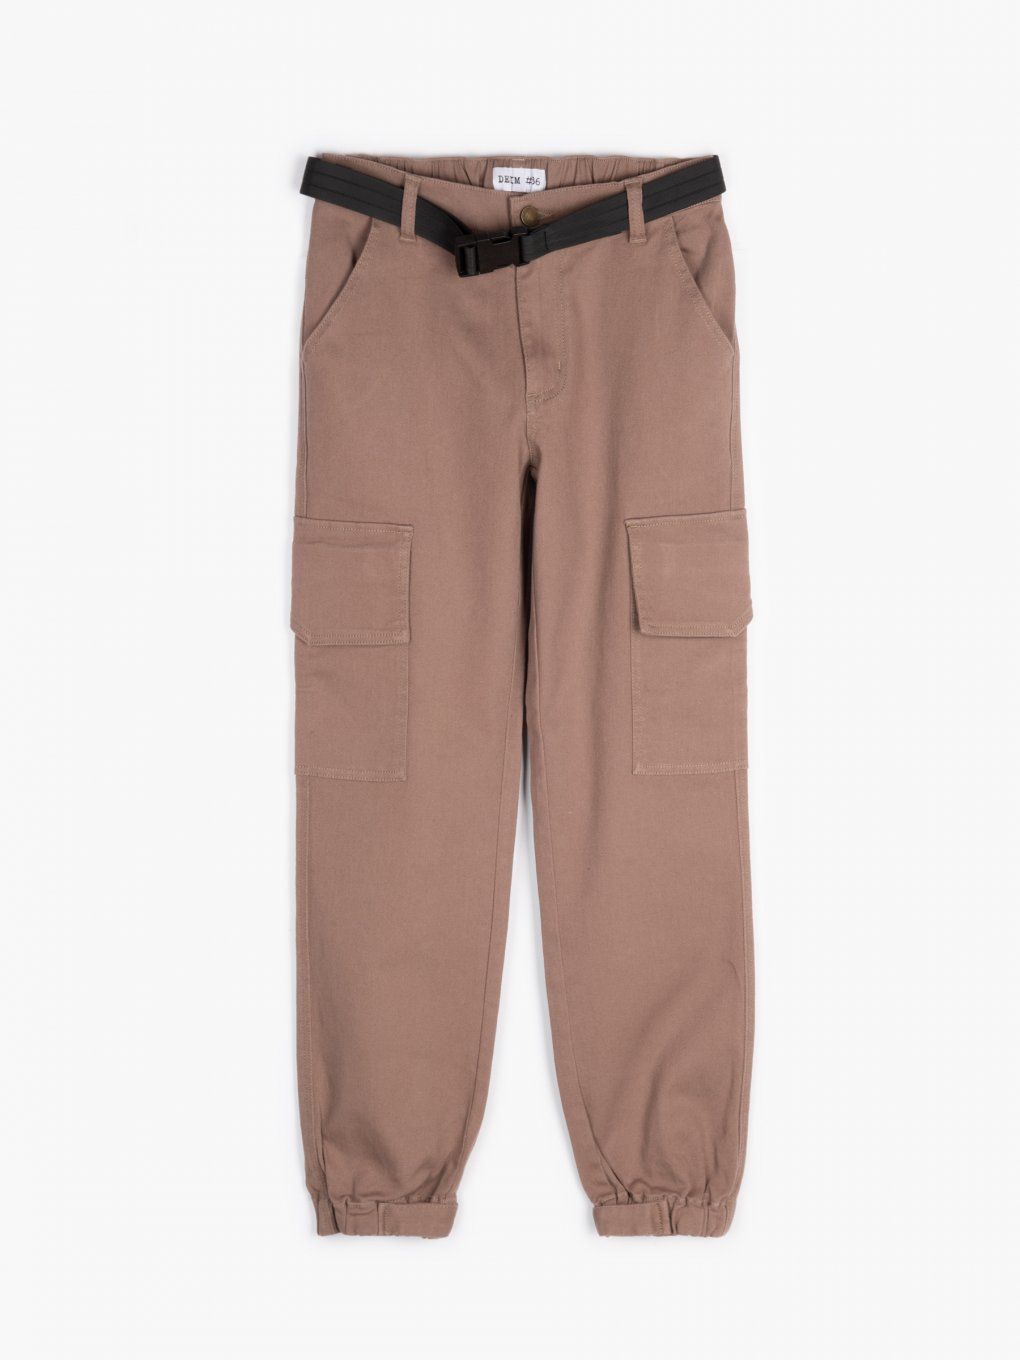 Cargo joggers with belt